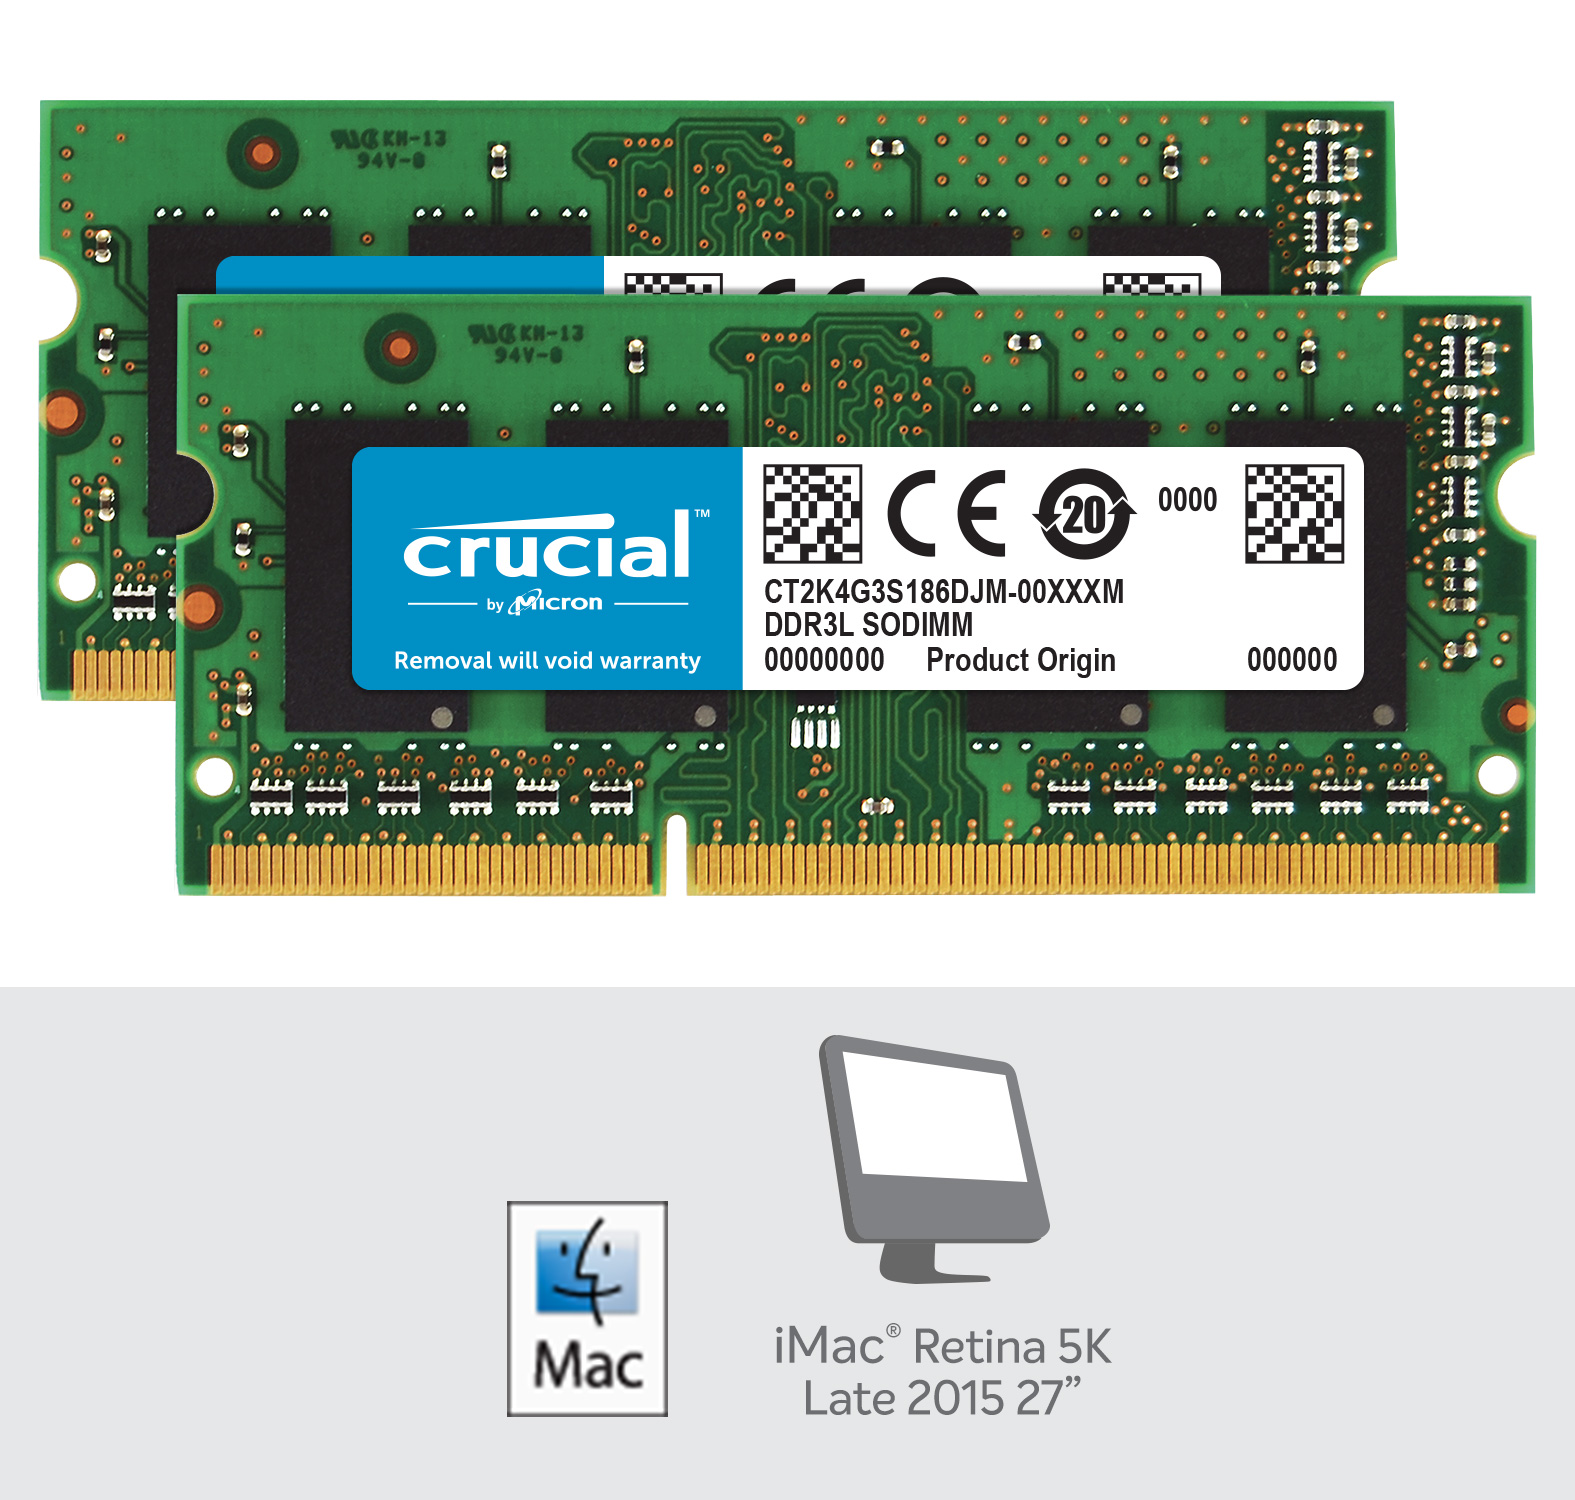 Crucial 8GB Kit (4GBx2) DDR3L-1866 SODIMM for Mac- view 2